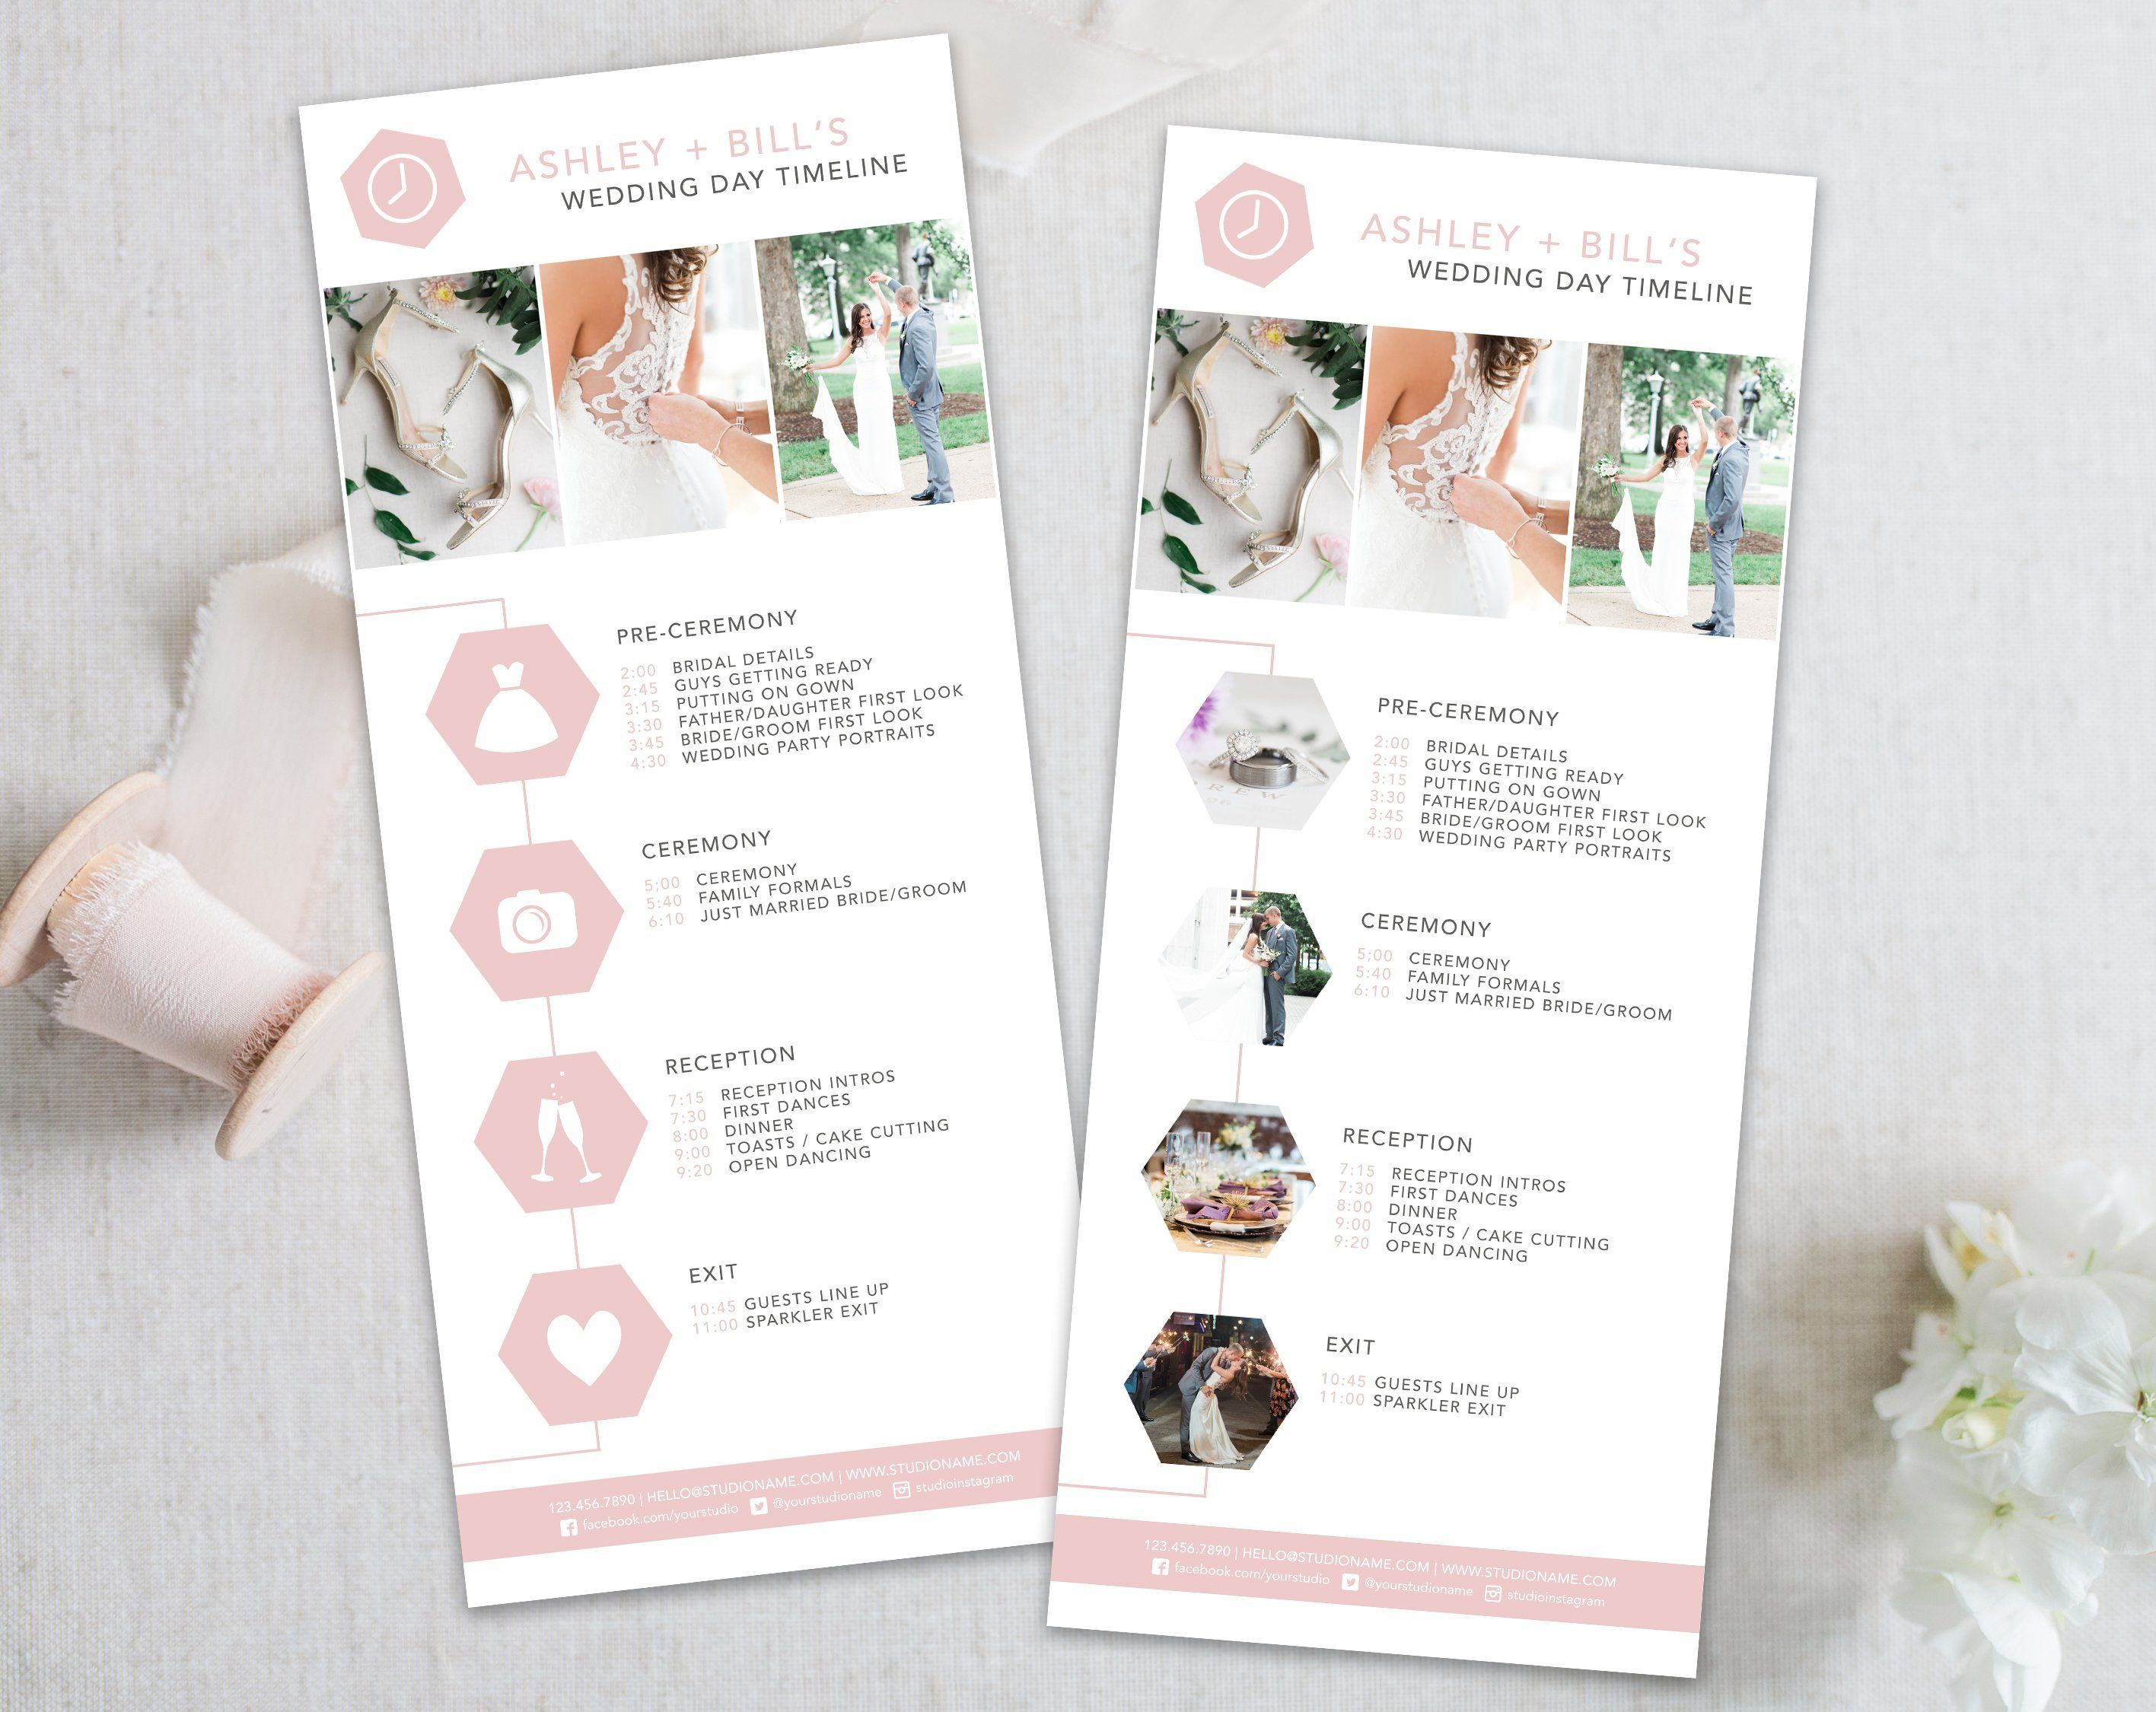 003 Unique Wedding Timeline Template Free Download Photo Full